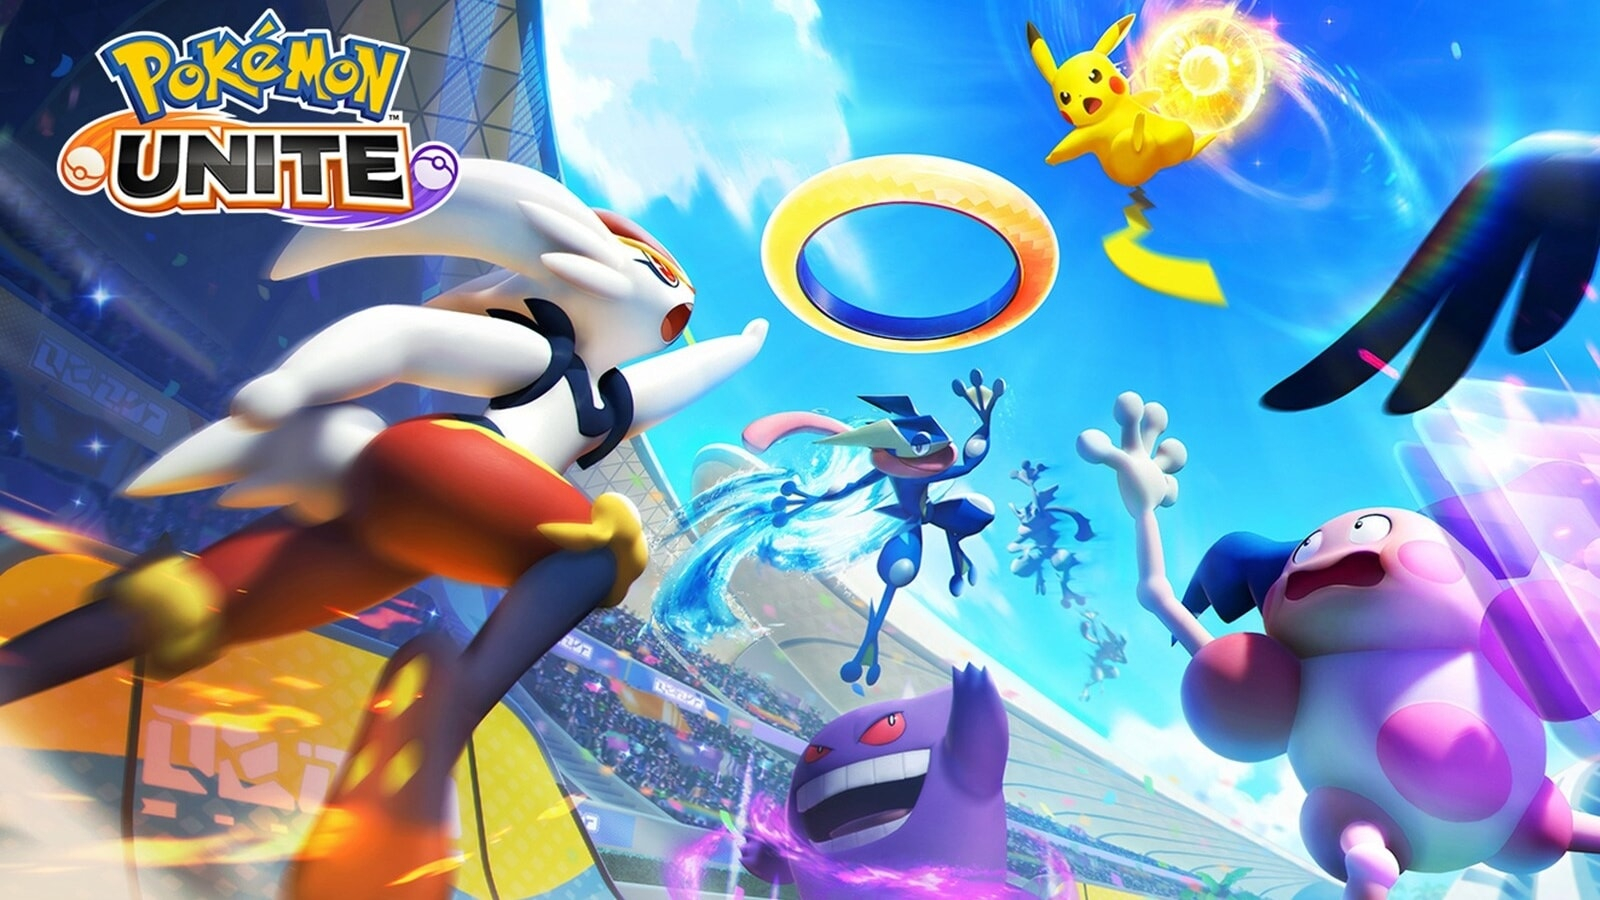 To launch Pokemon Unite on the Nintendo Switch in July, it will come to mobile